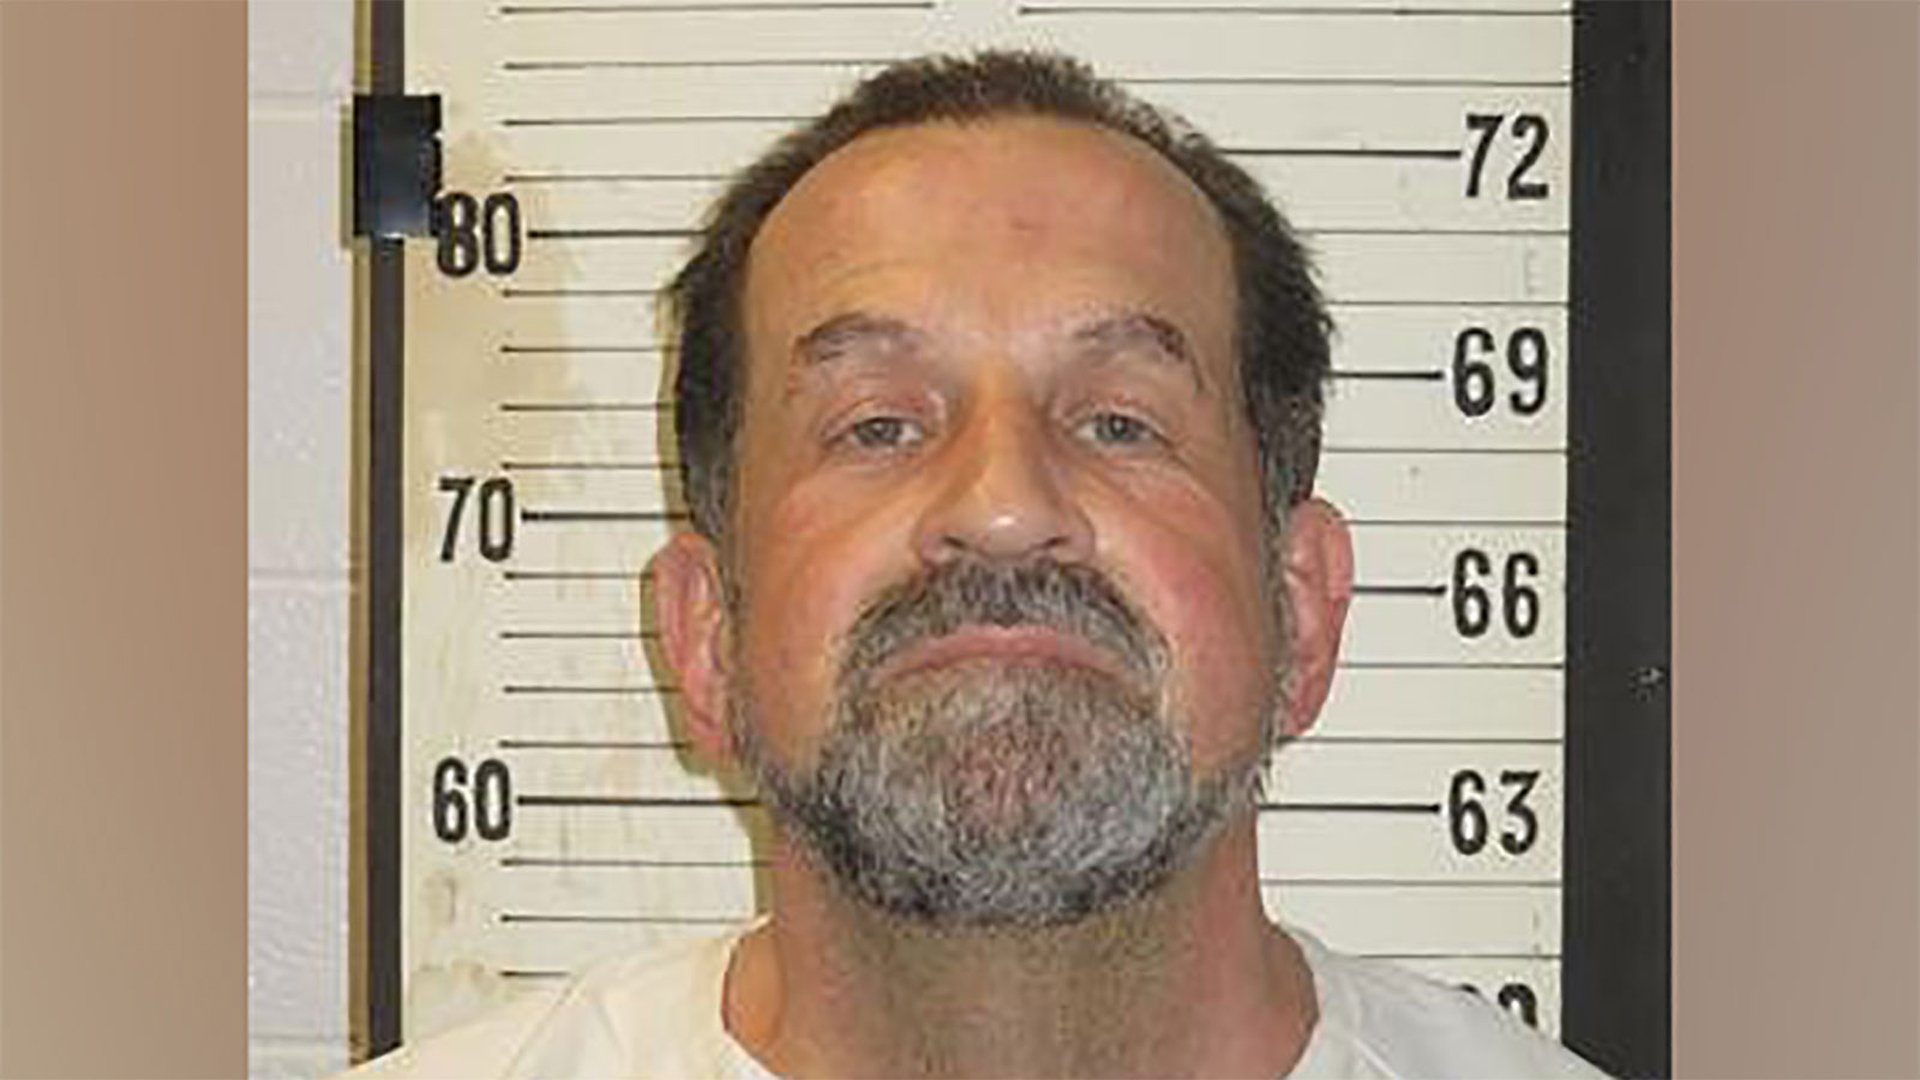 Nicholas Sutton is seen in a photo from the Tennessee Department of Corrections.